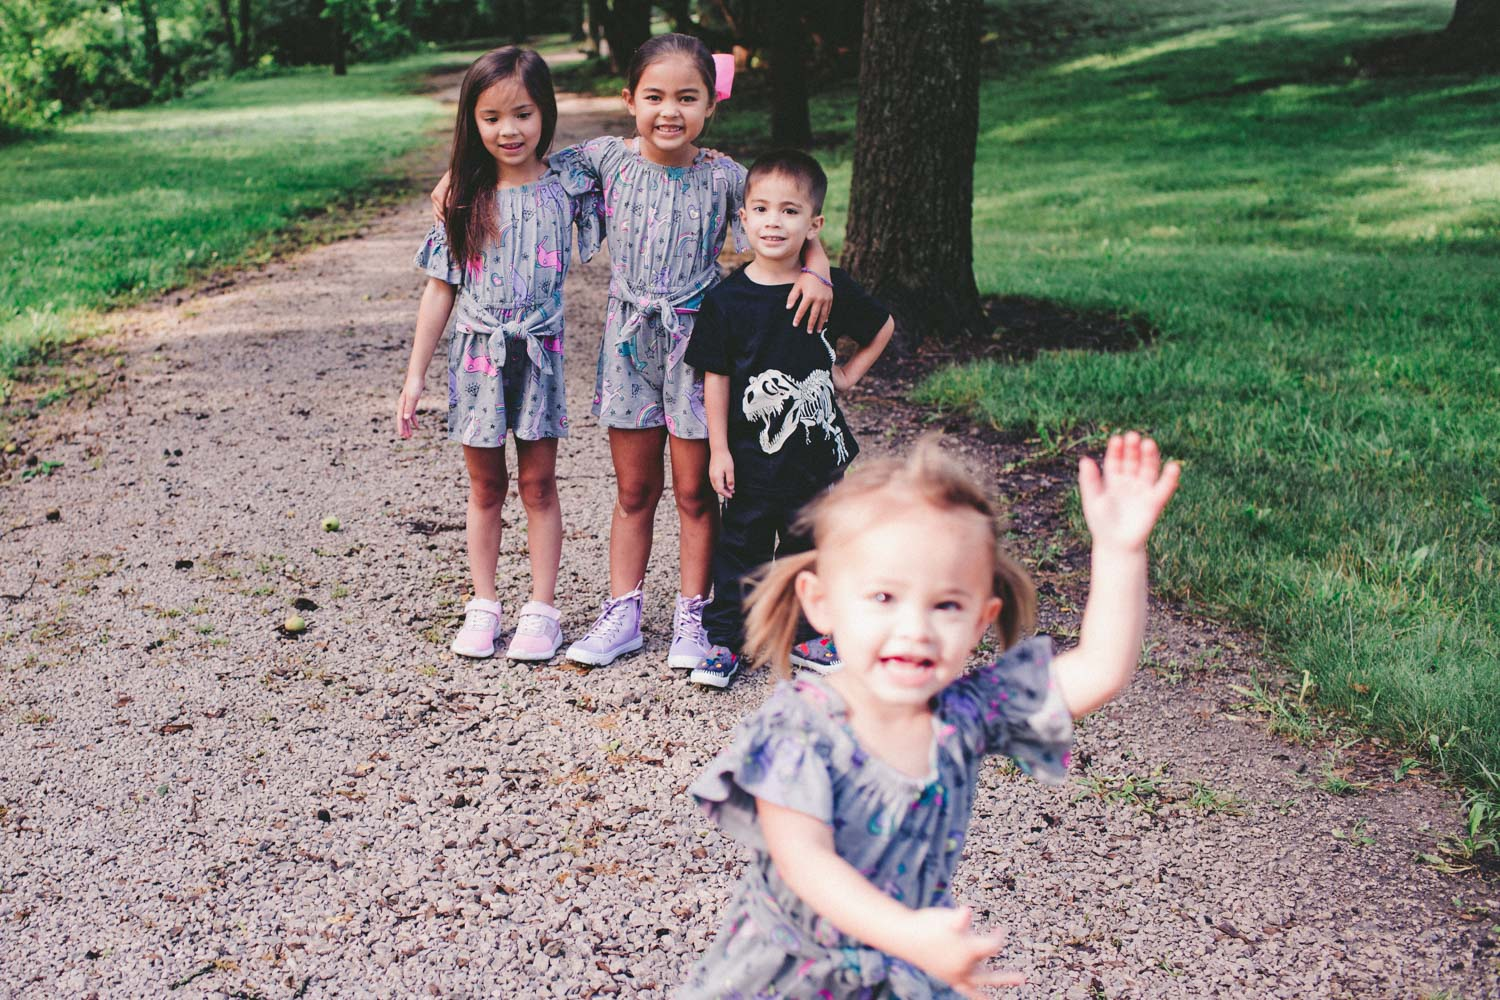 unicorn outfits and rompers for girls